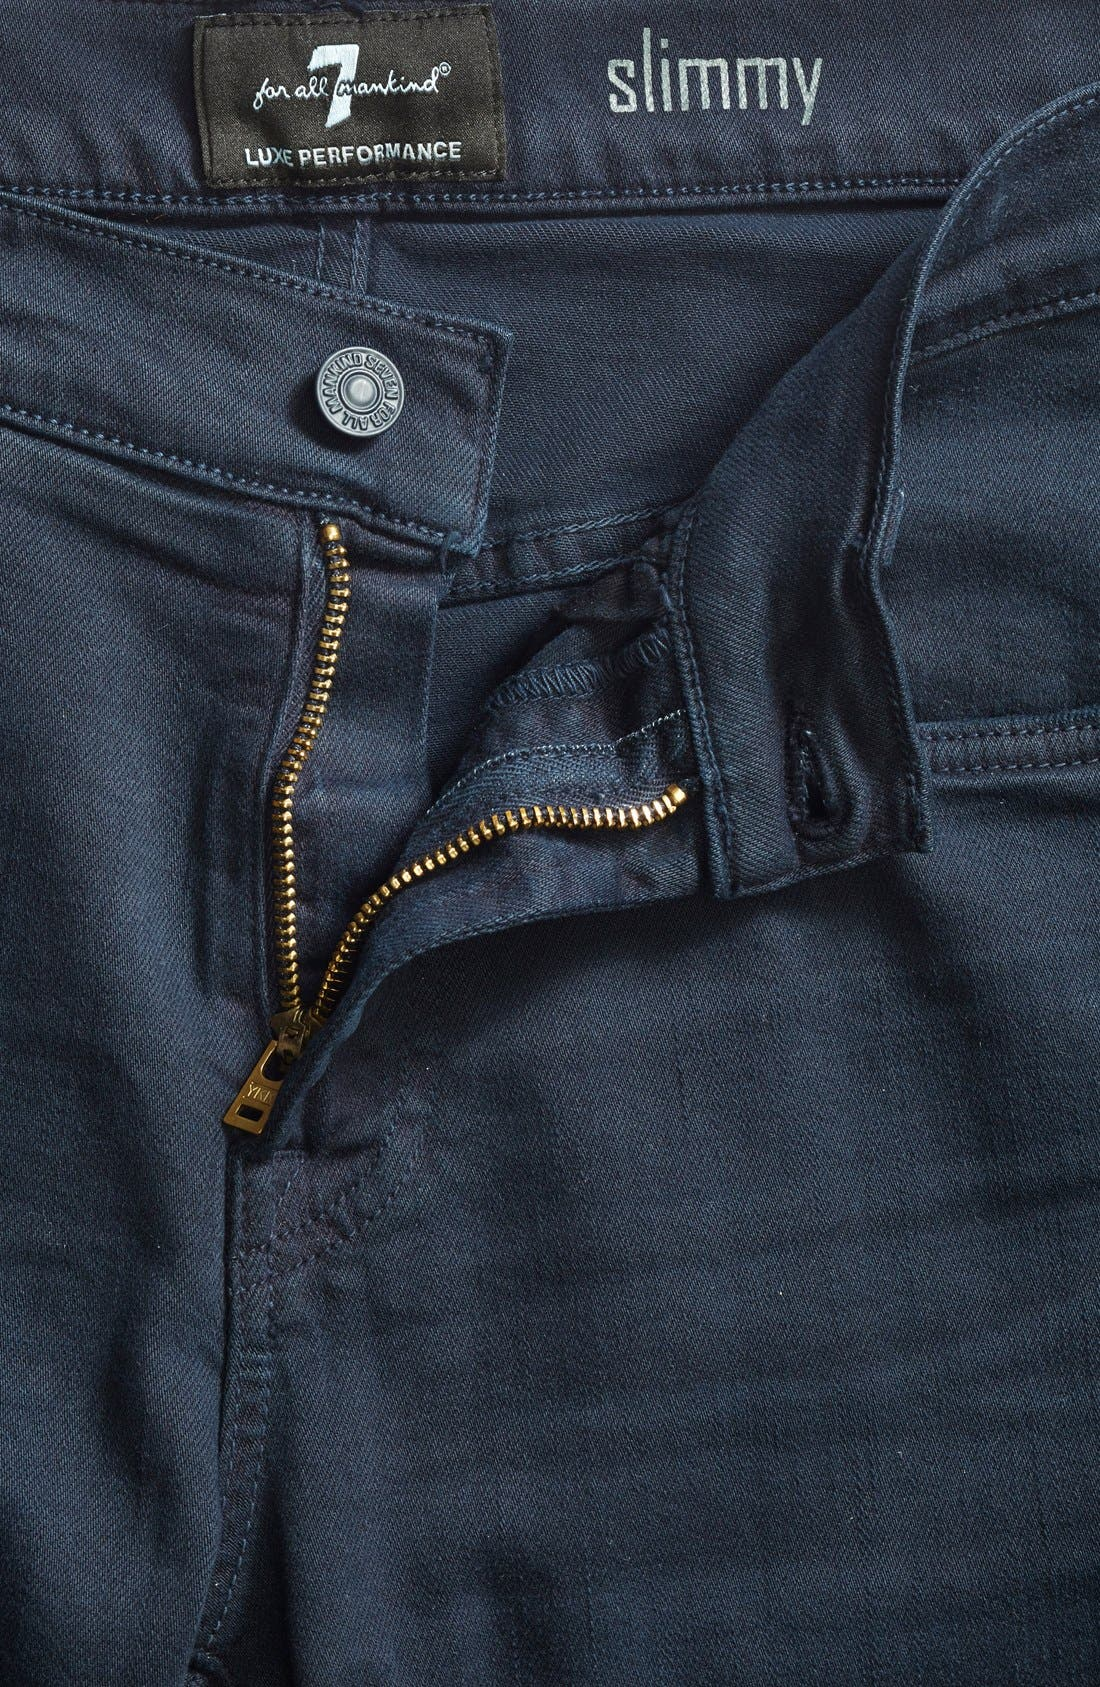 Alternate Image 2  - 7 For All Mankind® 'Slimmy - Luxe Performance' Slim Fit Jeans (Night Navy)